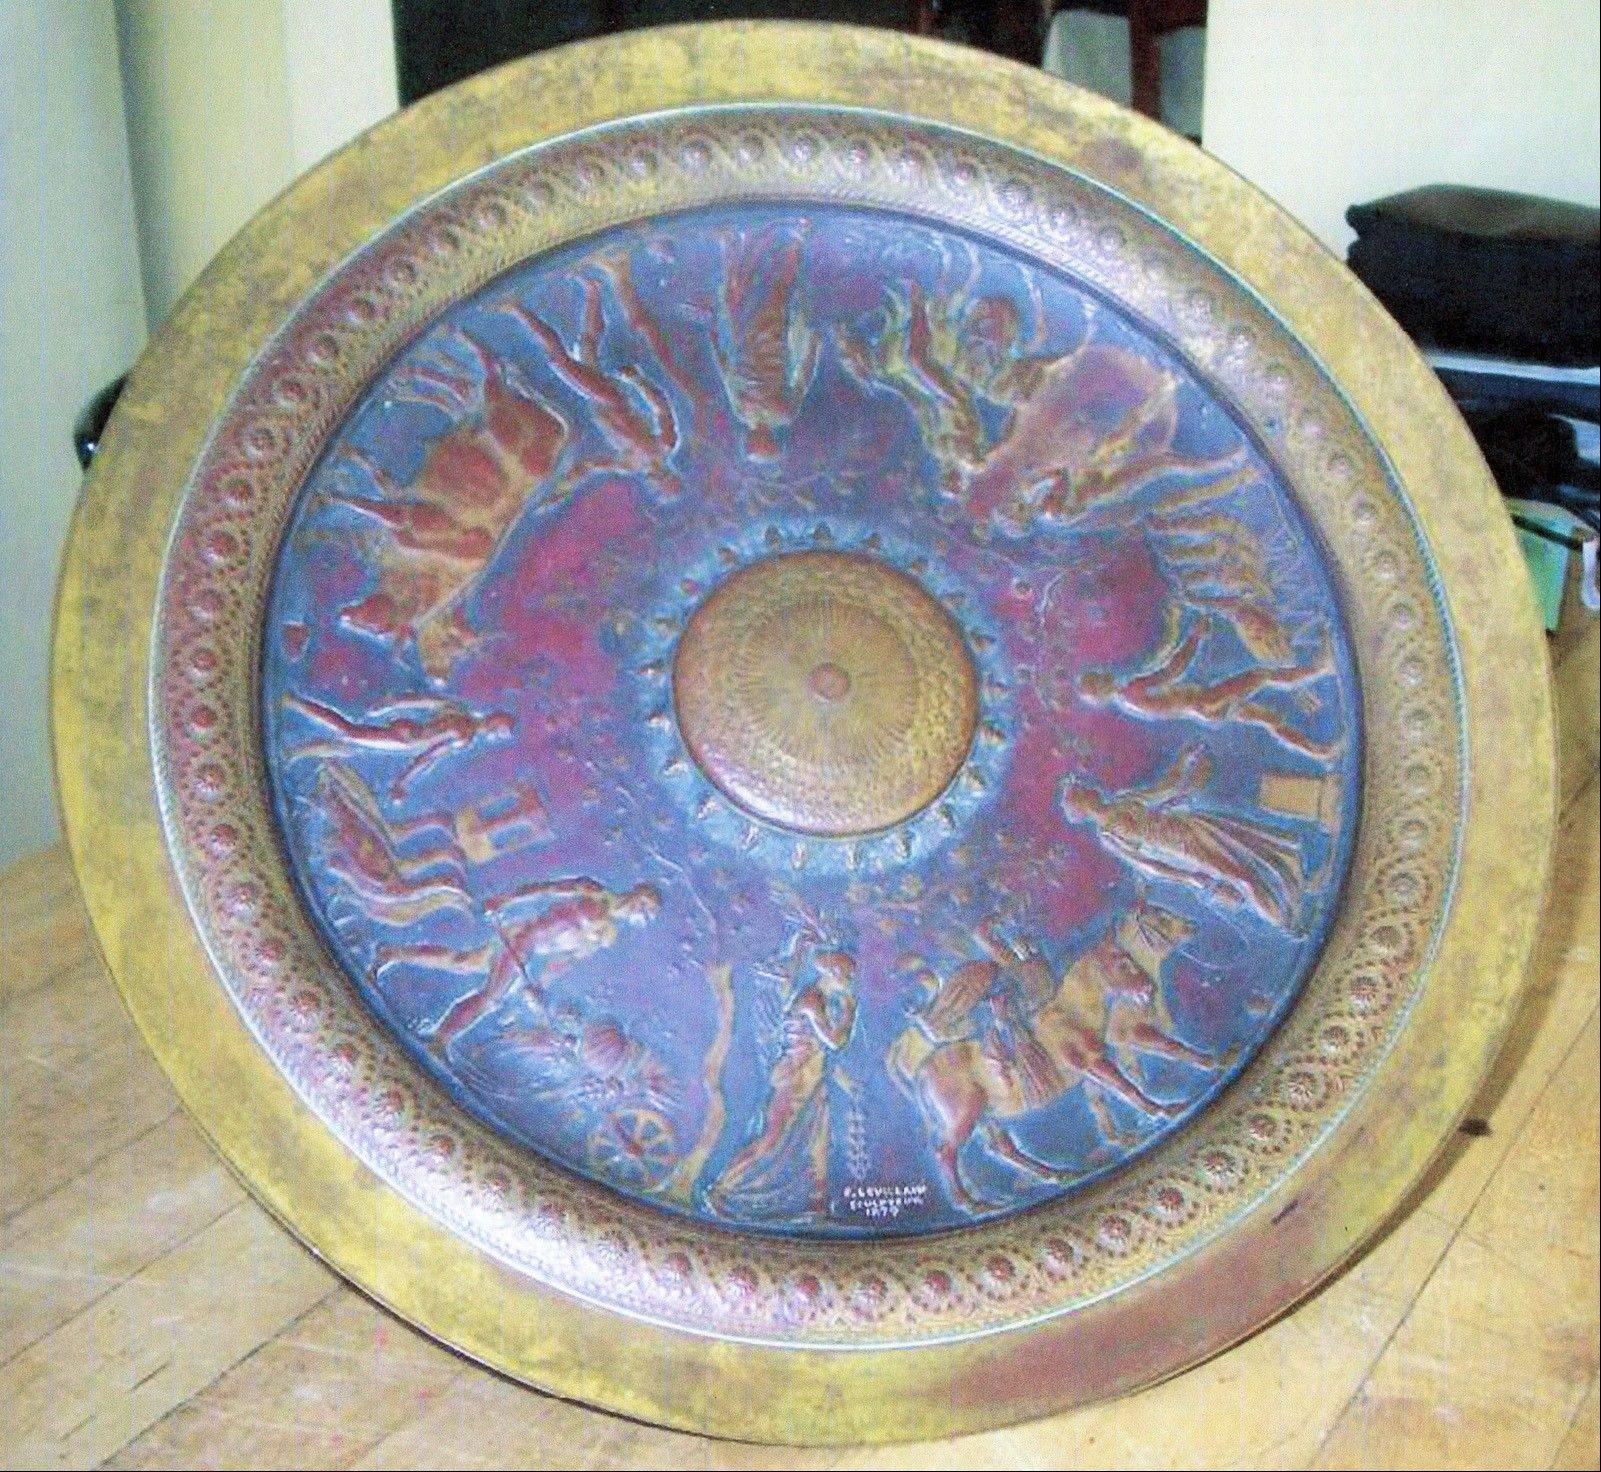 SH13E023TREASURES May 6, 2013 -- This bronze has the feel of ancient Rome, but is 19th-century French. (SHNS photo courtesy Joe Rosson and Helaine Fendelman / Treasures In Your Attic)